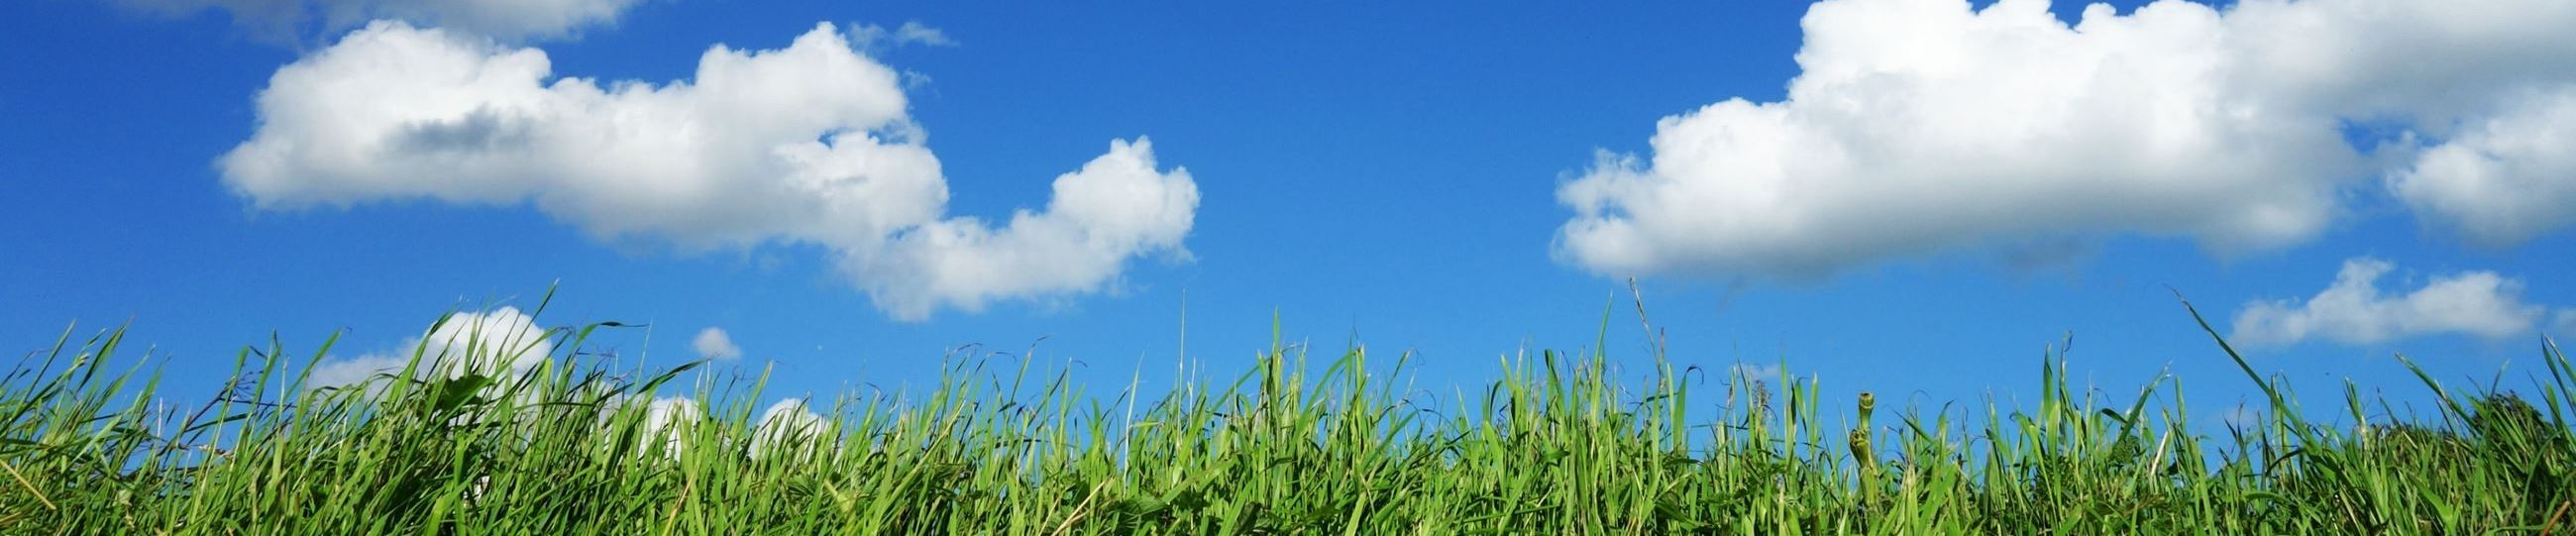 blue-sky-bright-clouds-125457